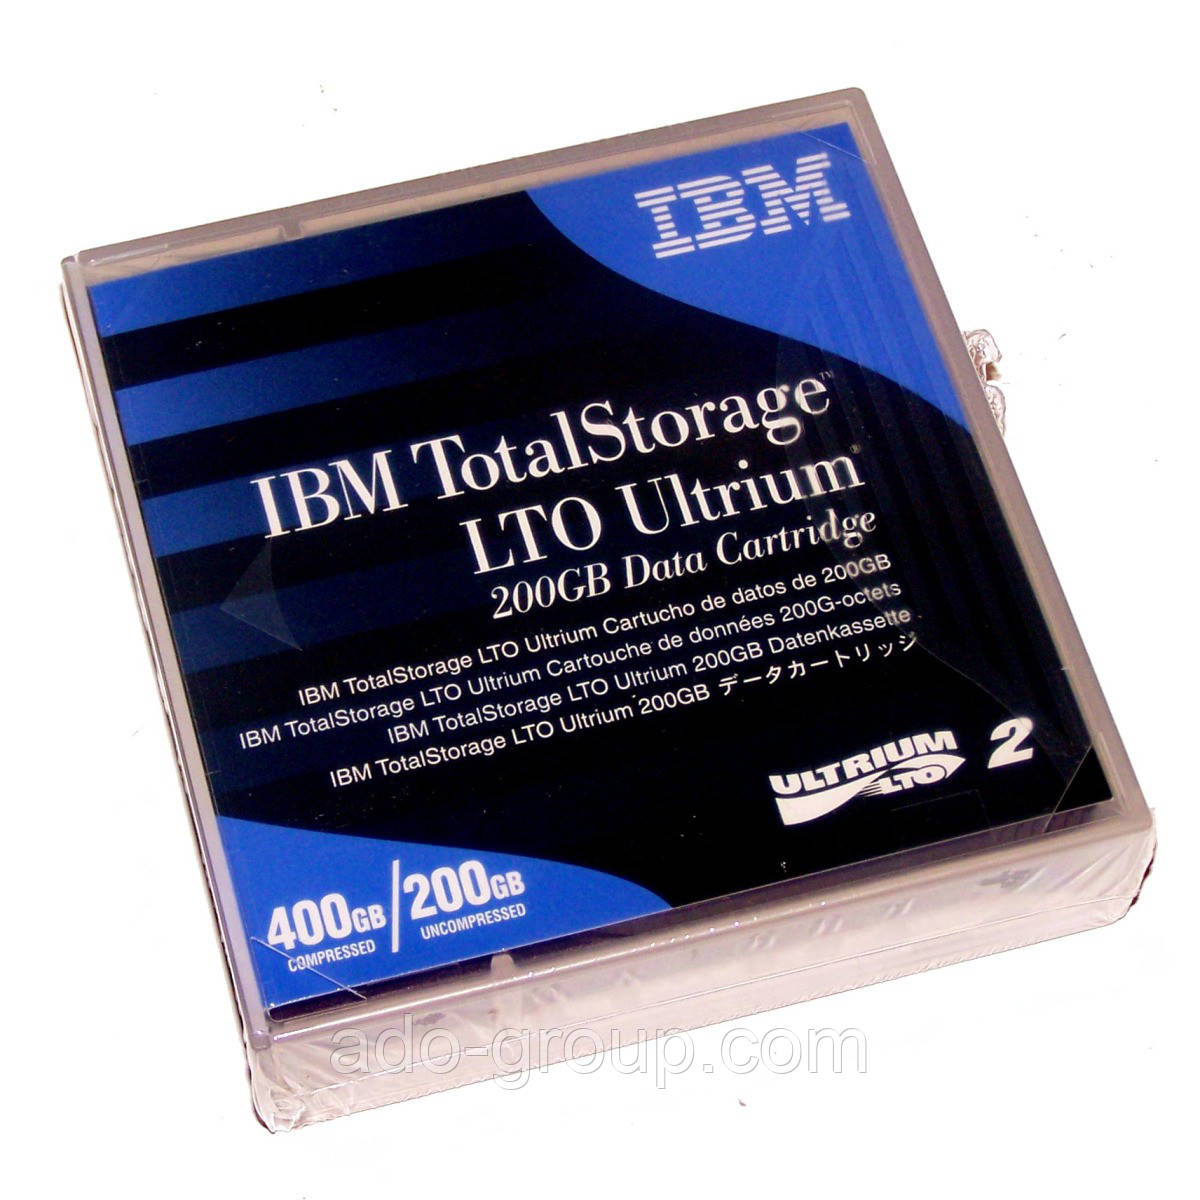 08L9870 Картридж IBM LTO-2 Ultrium Data Cartridge